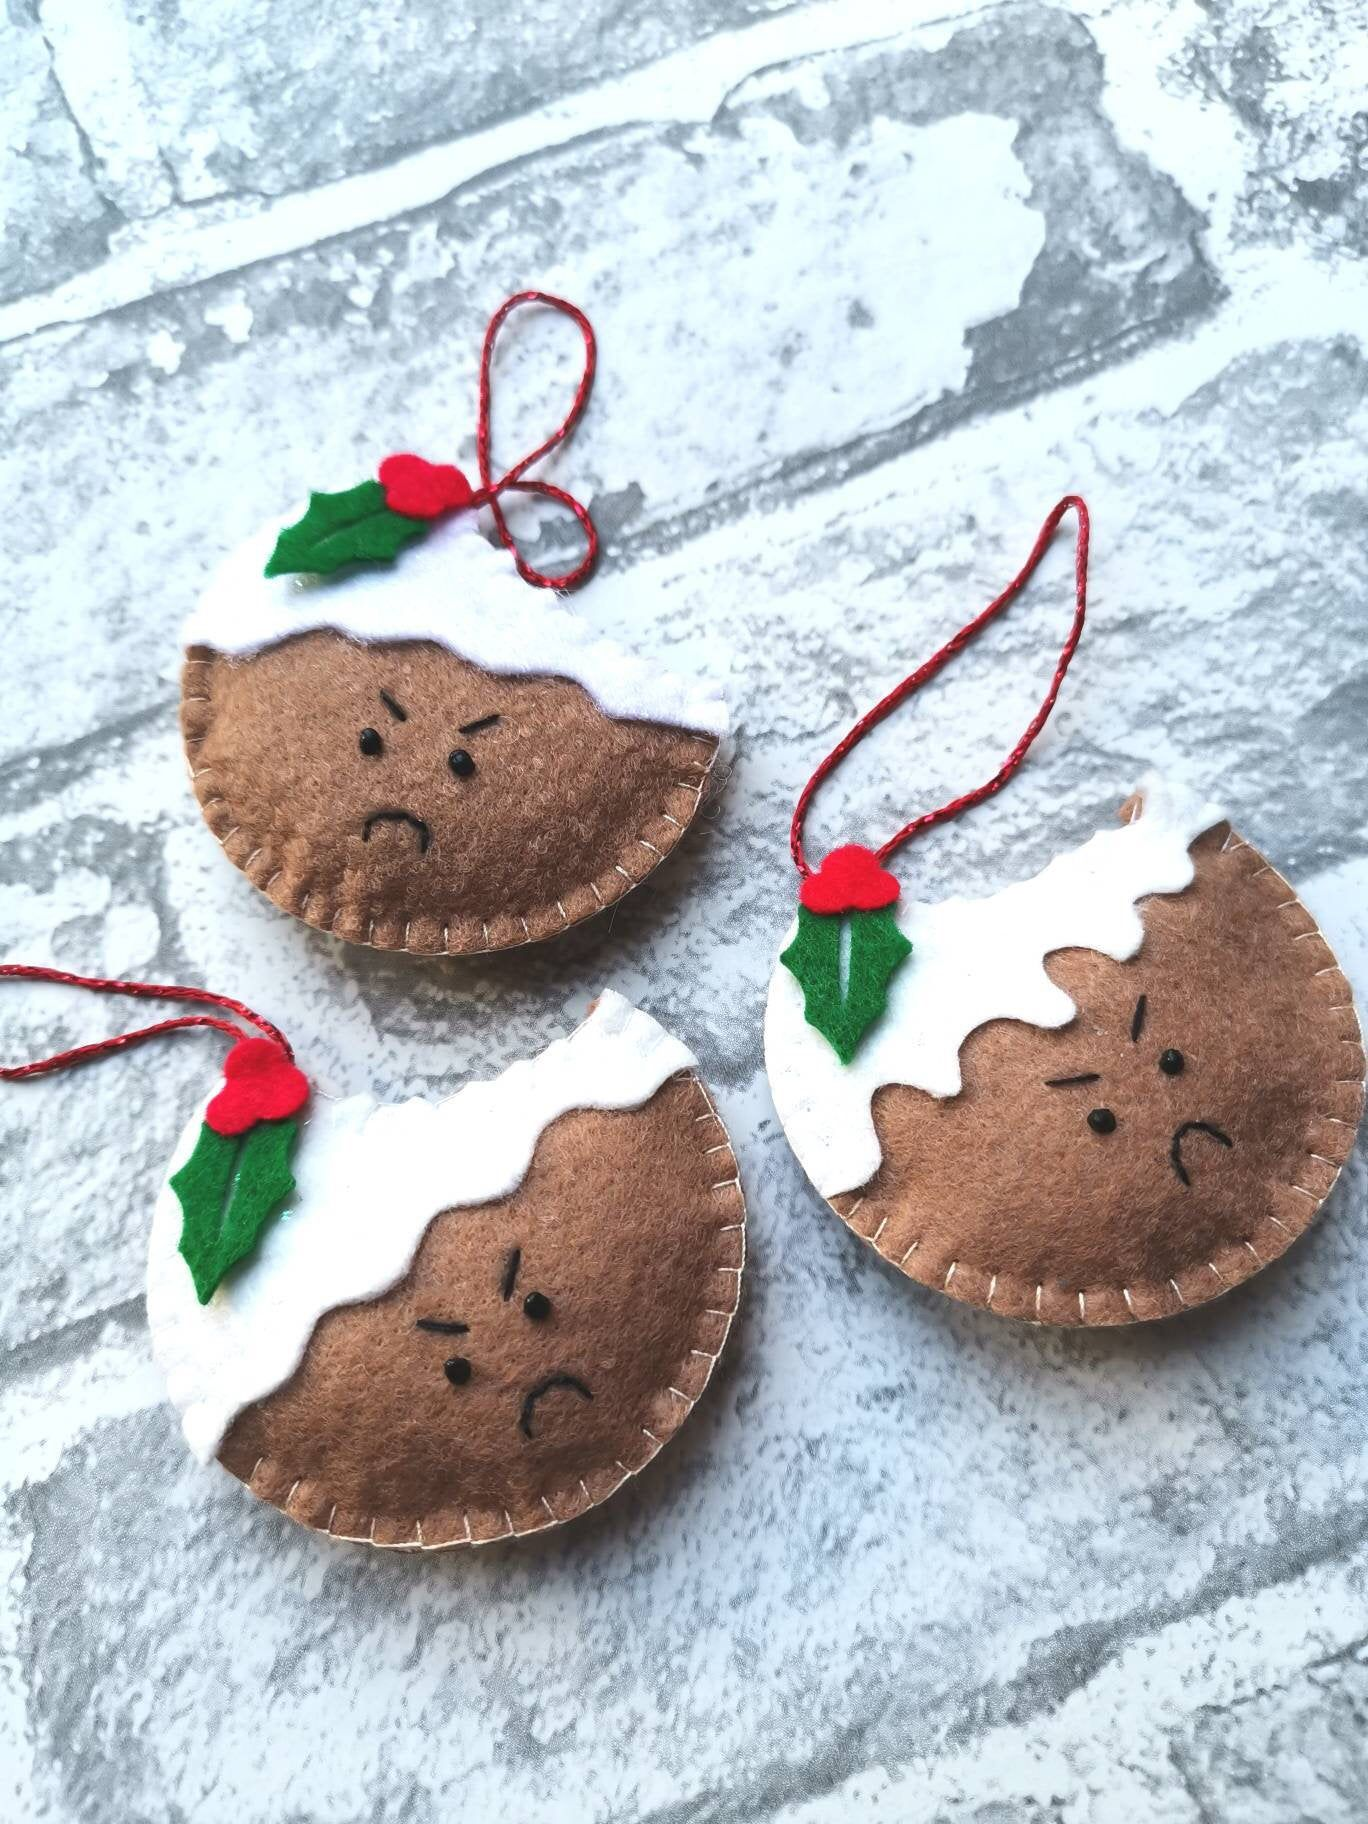 Excited to share this item from my shop: Christmas Pudding Decoration, Christmas Pudding Tree Decoration, Christmas Decorations, Christmas Decor, Christmas Pudding Ornament, Biten